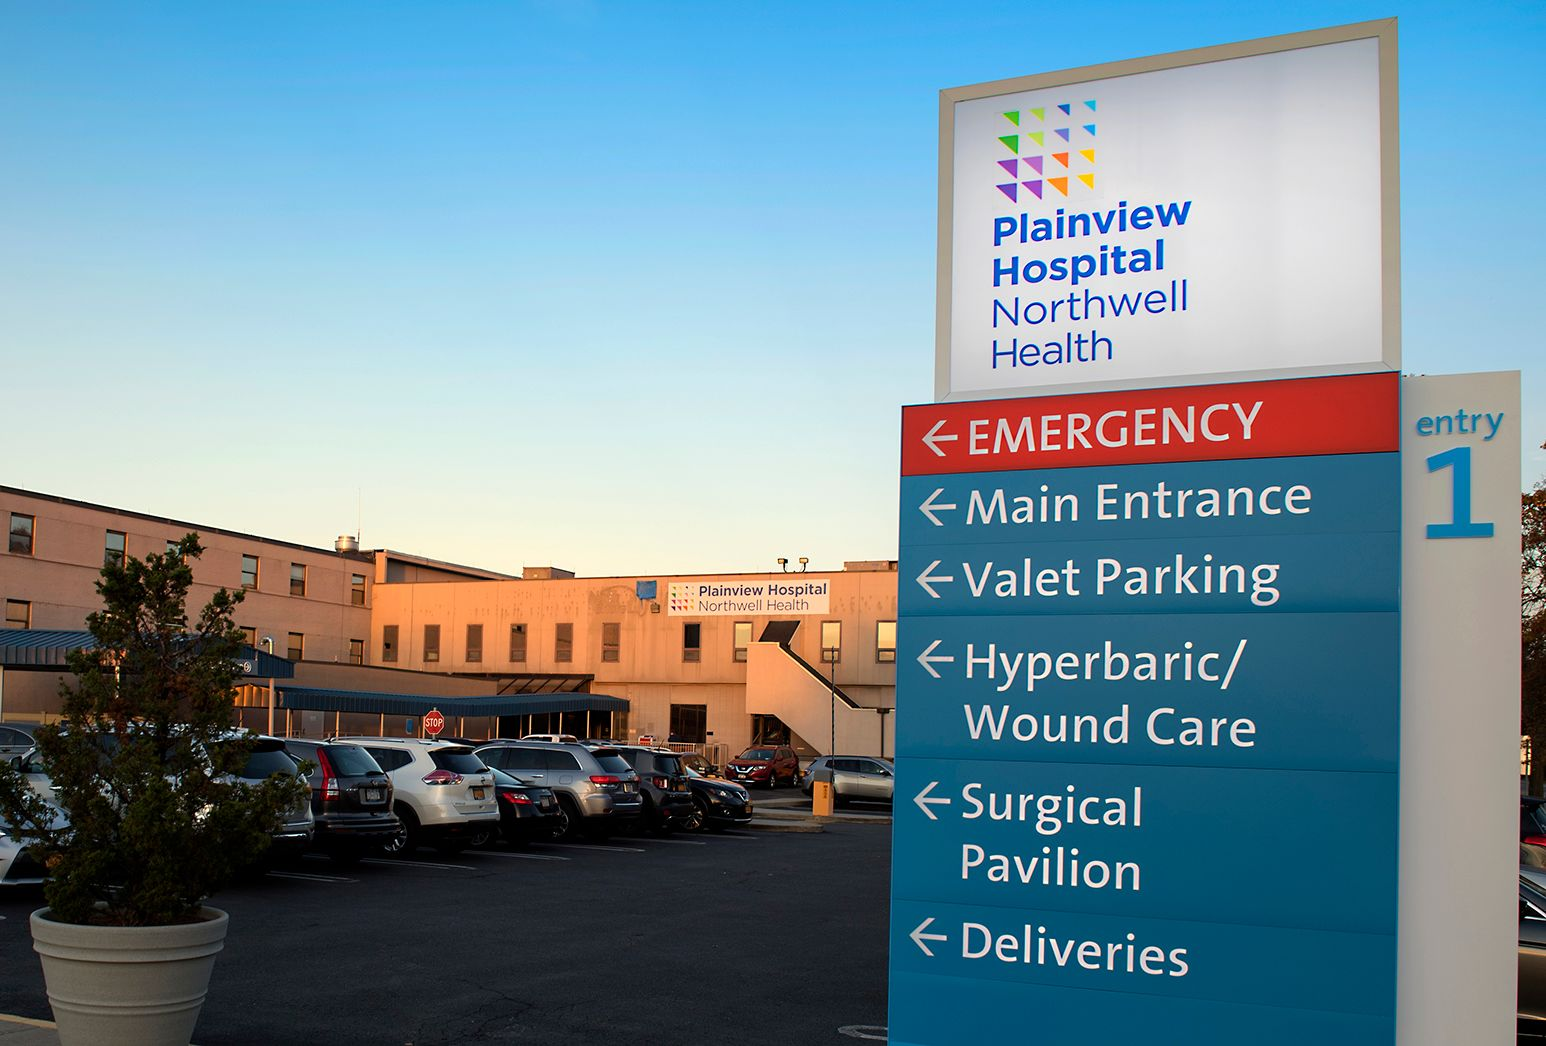 An external shot of Plainview Hospital